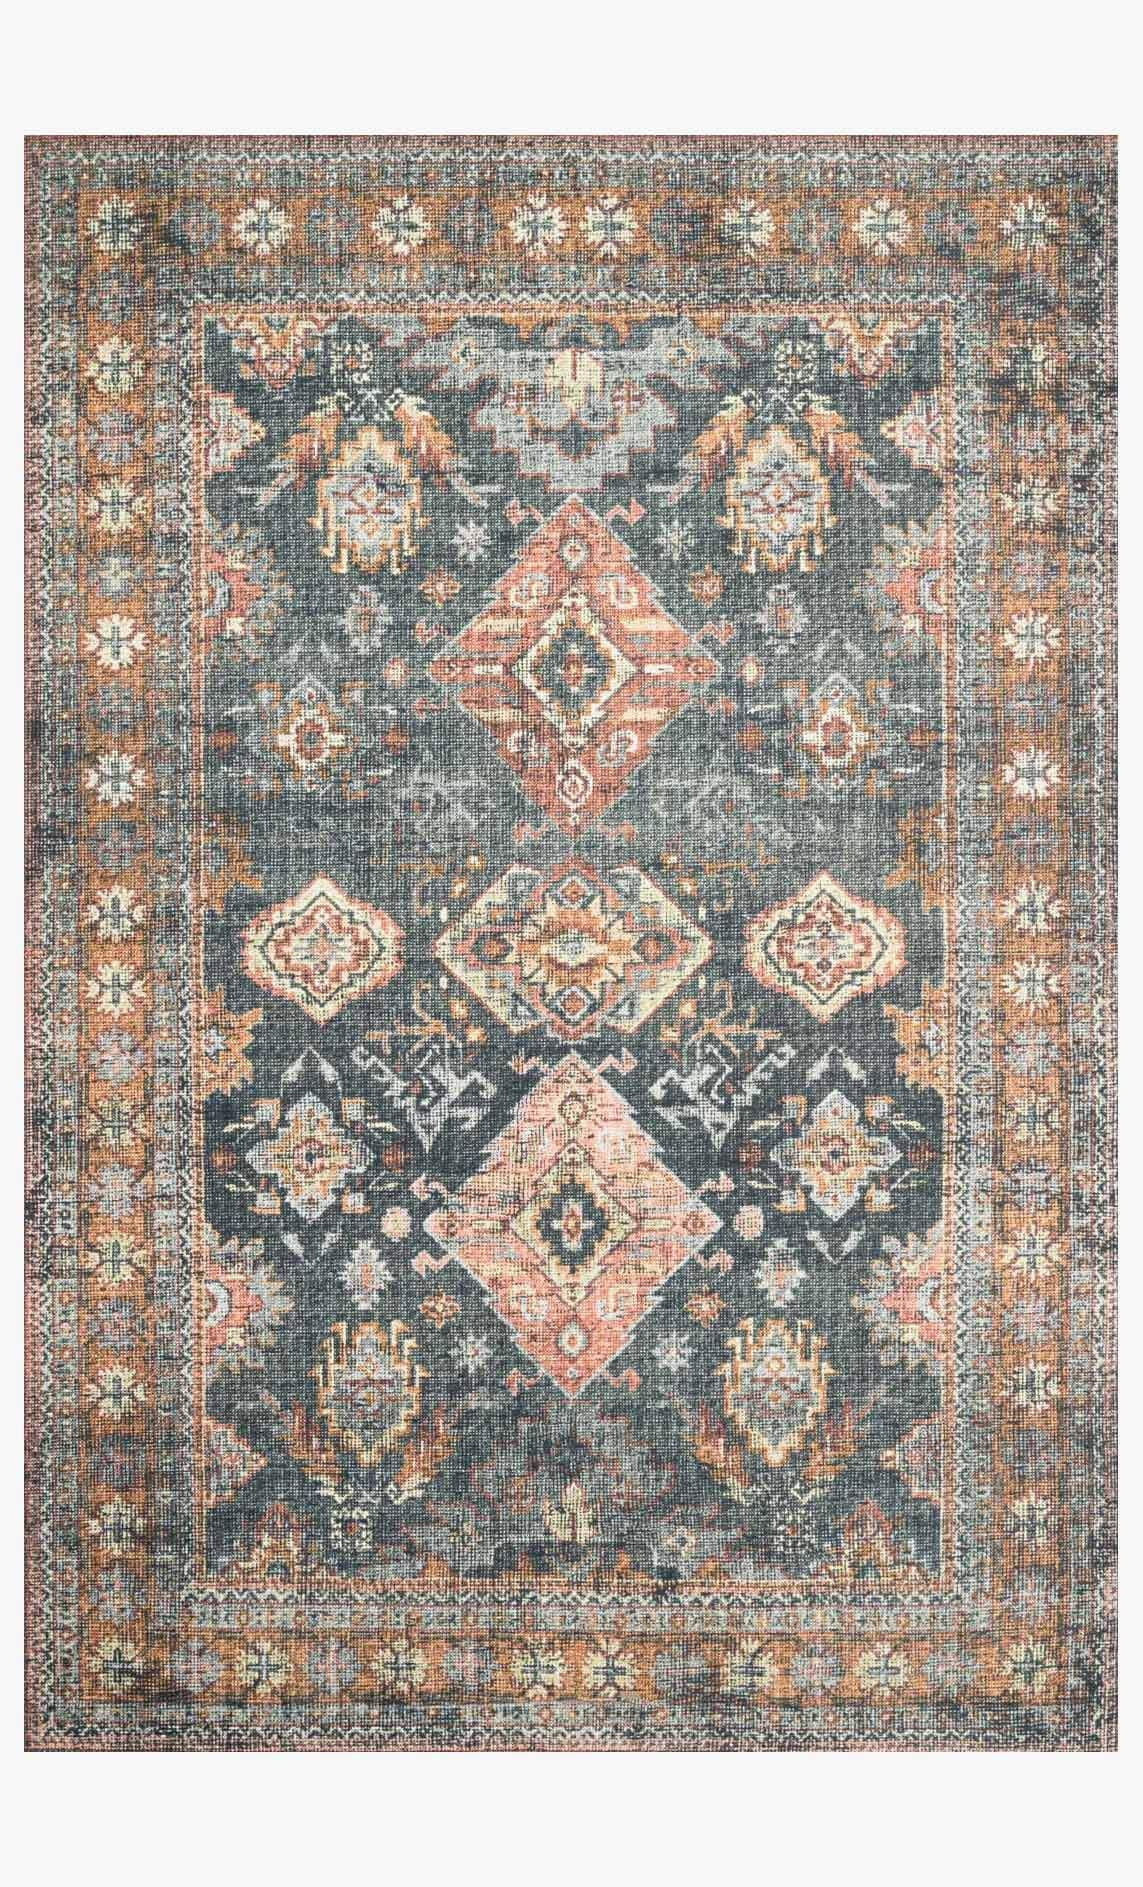 Pin By Karin Beauregard On And They Were Roommates In 2020 Rugs On Carpet Rugs Area Rugs